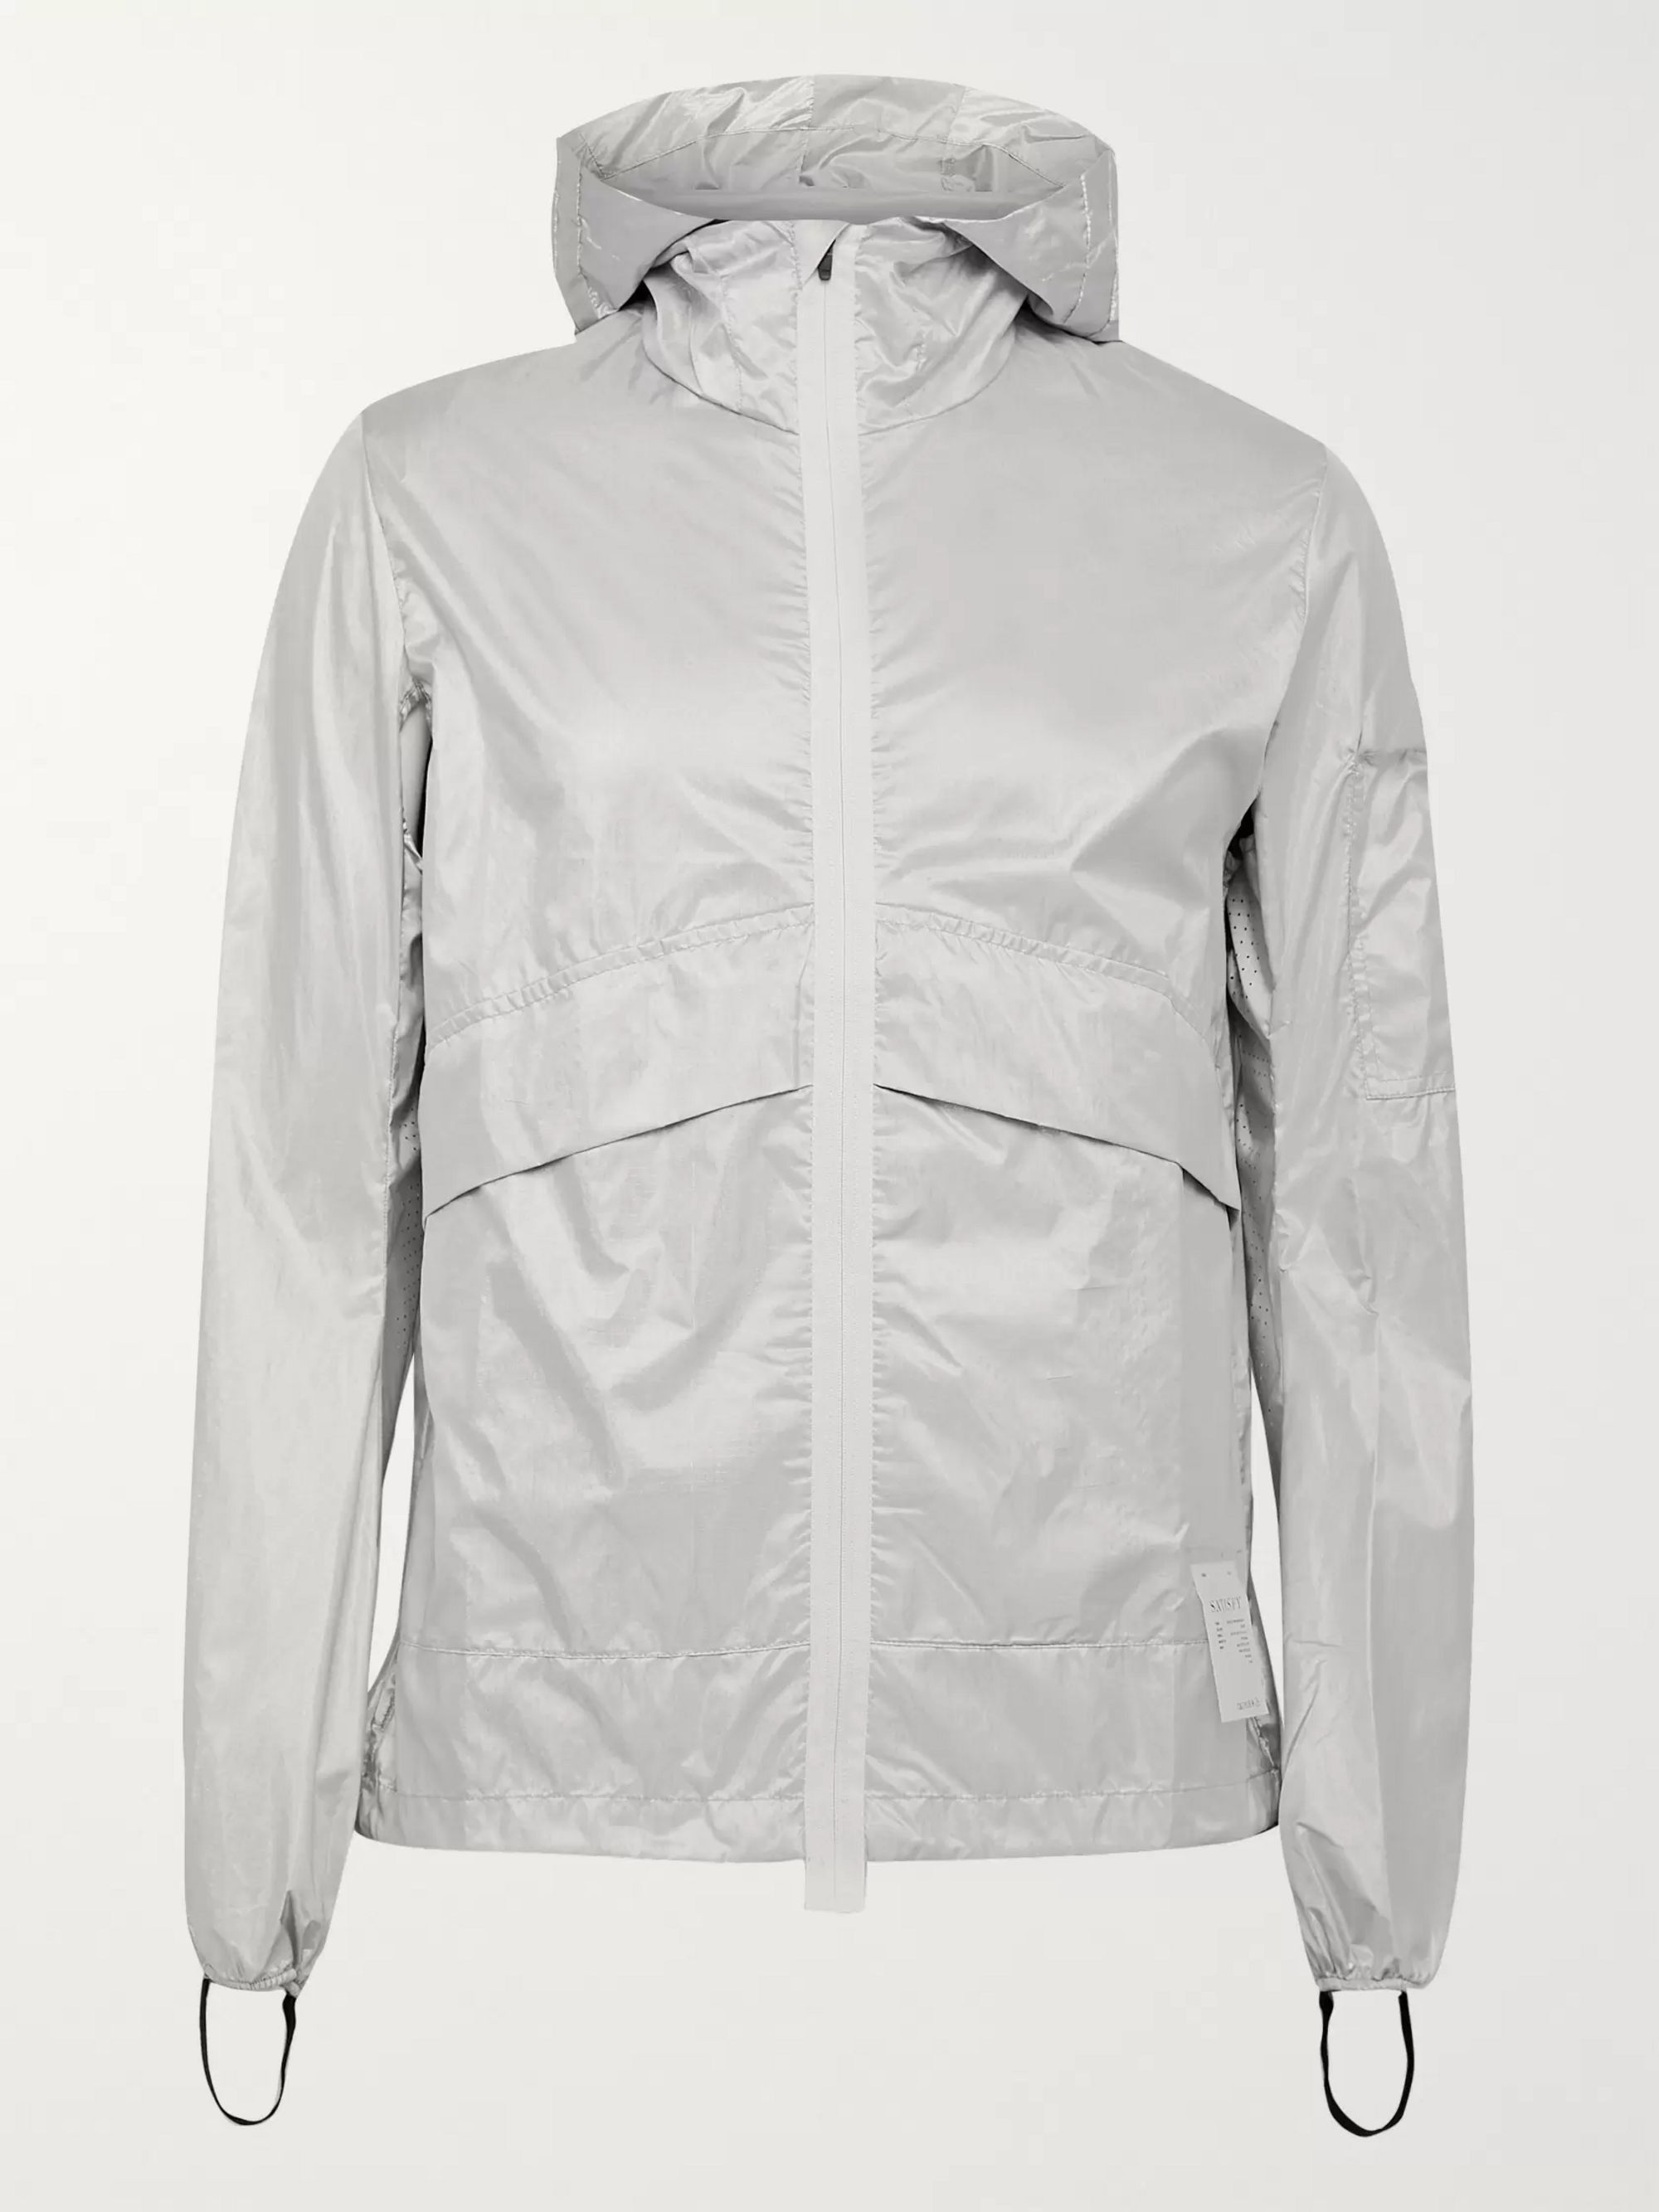 Silver Packable Reflective Printed Ripstop Hooded Jacket | Satisfy | MR PORTER